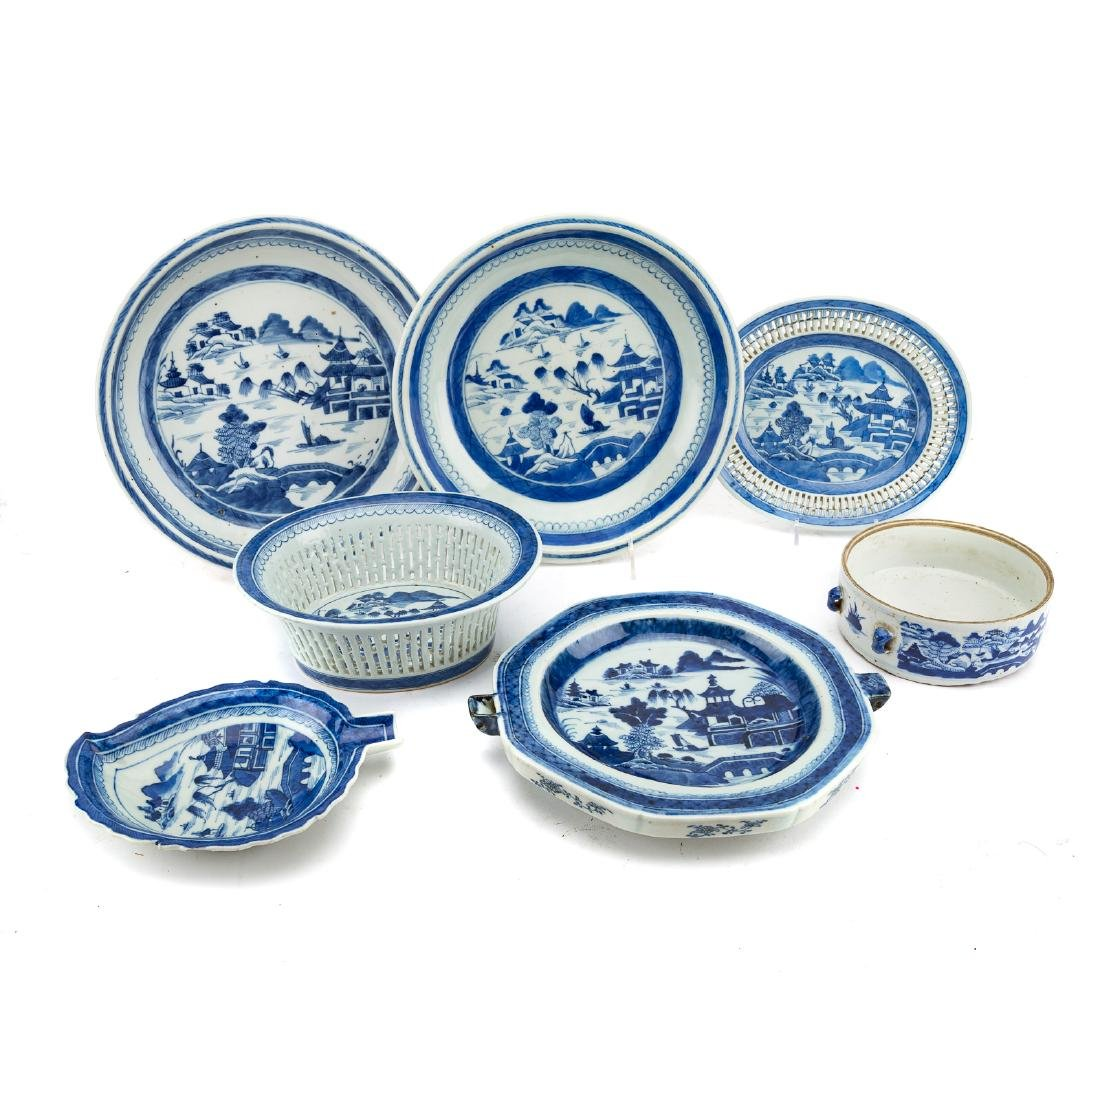 Seven Chinese Export Canton porcelain objects